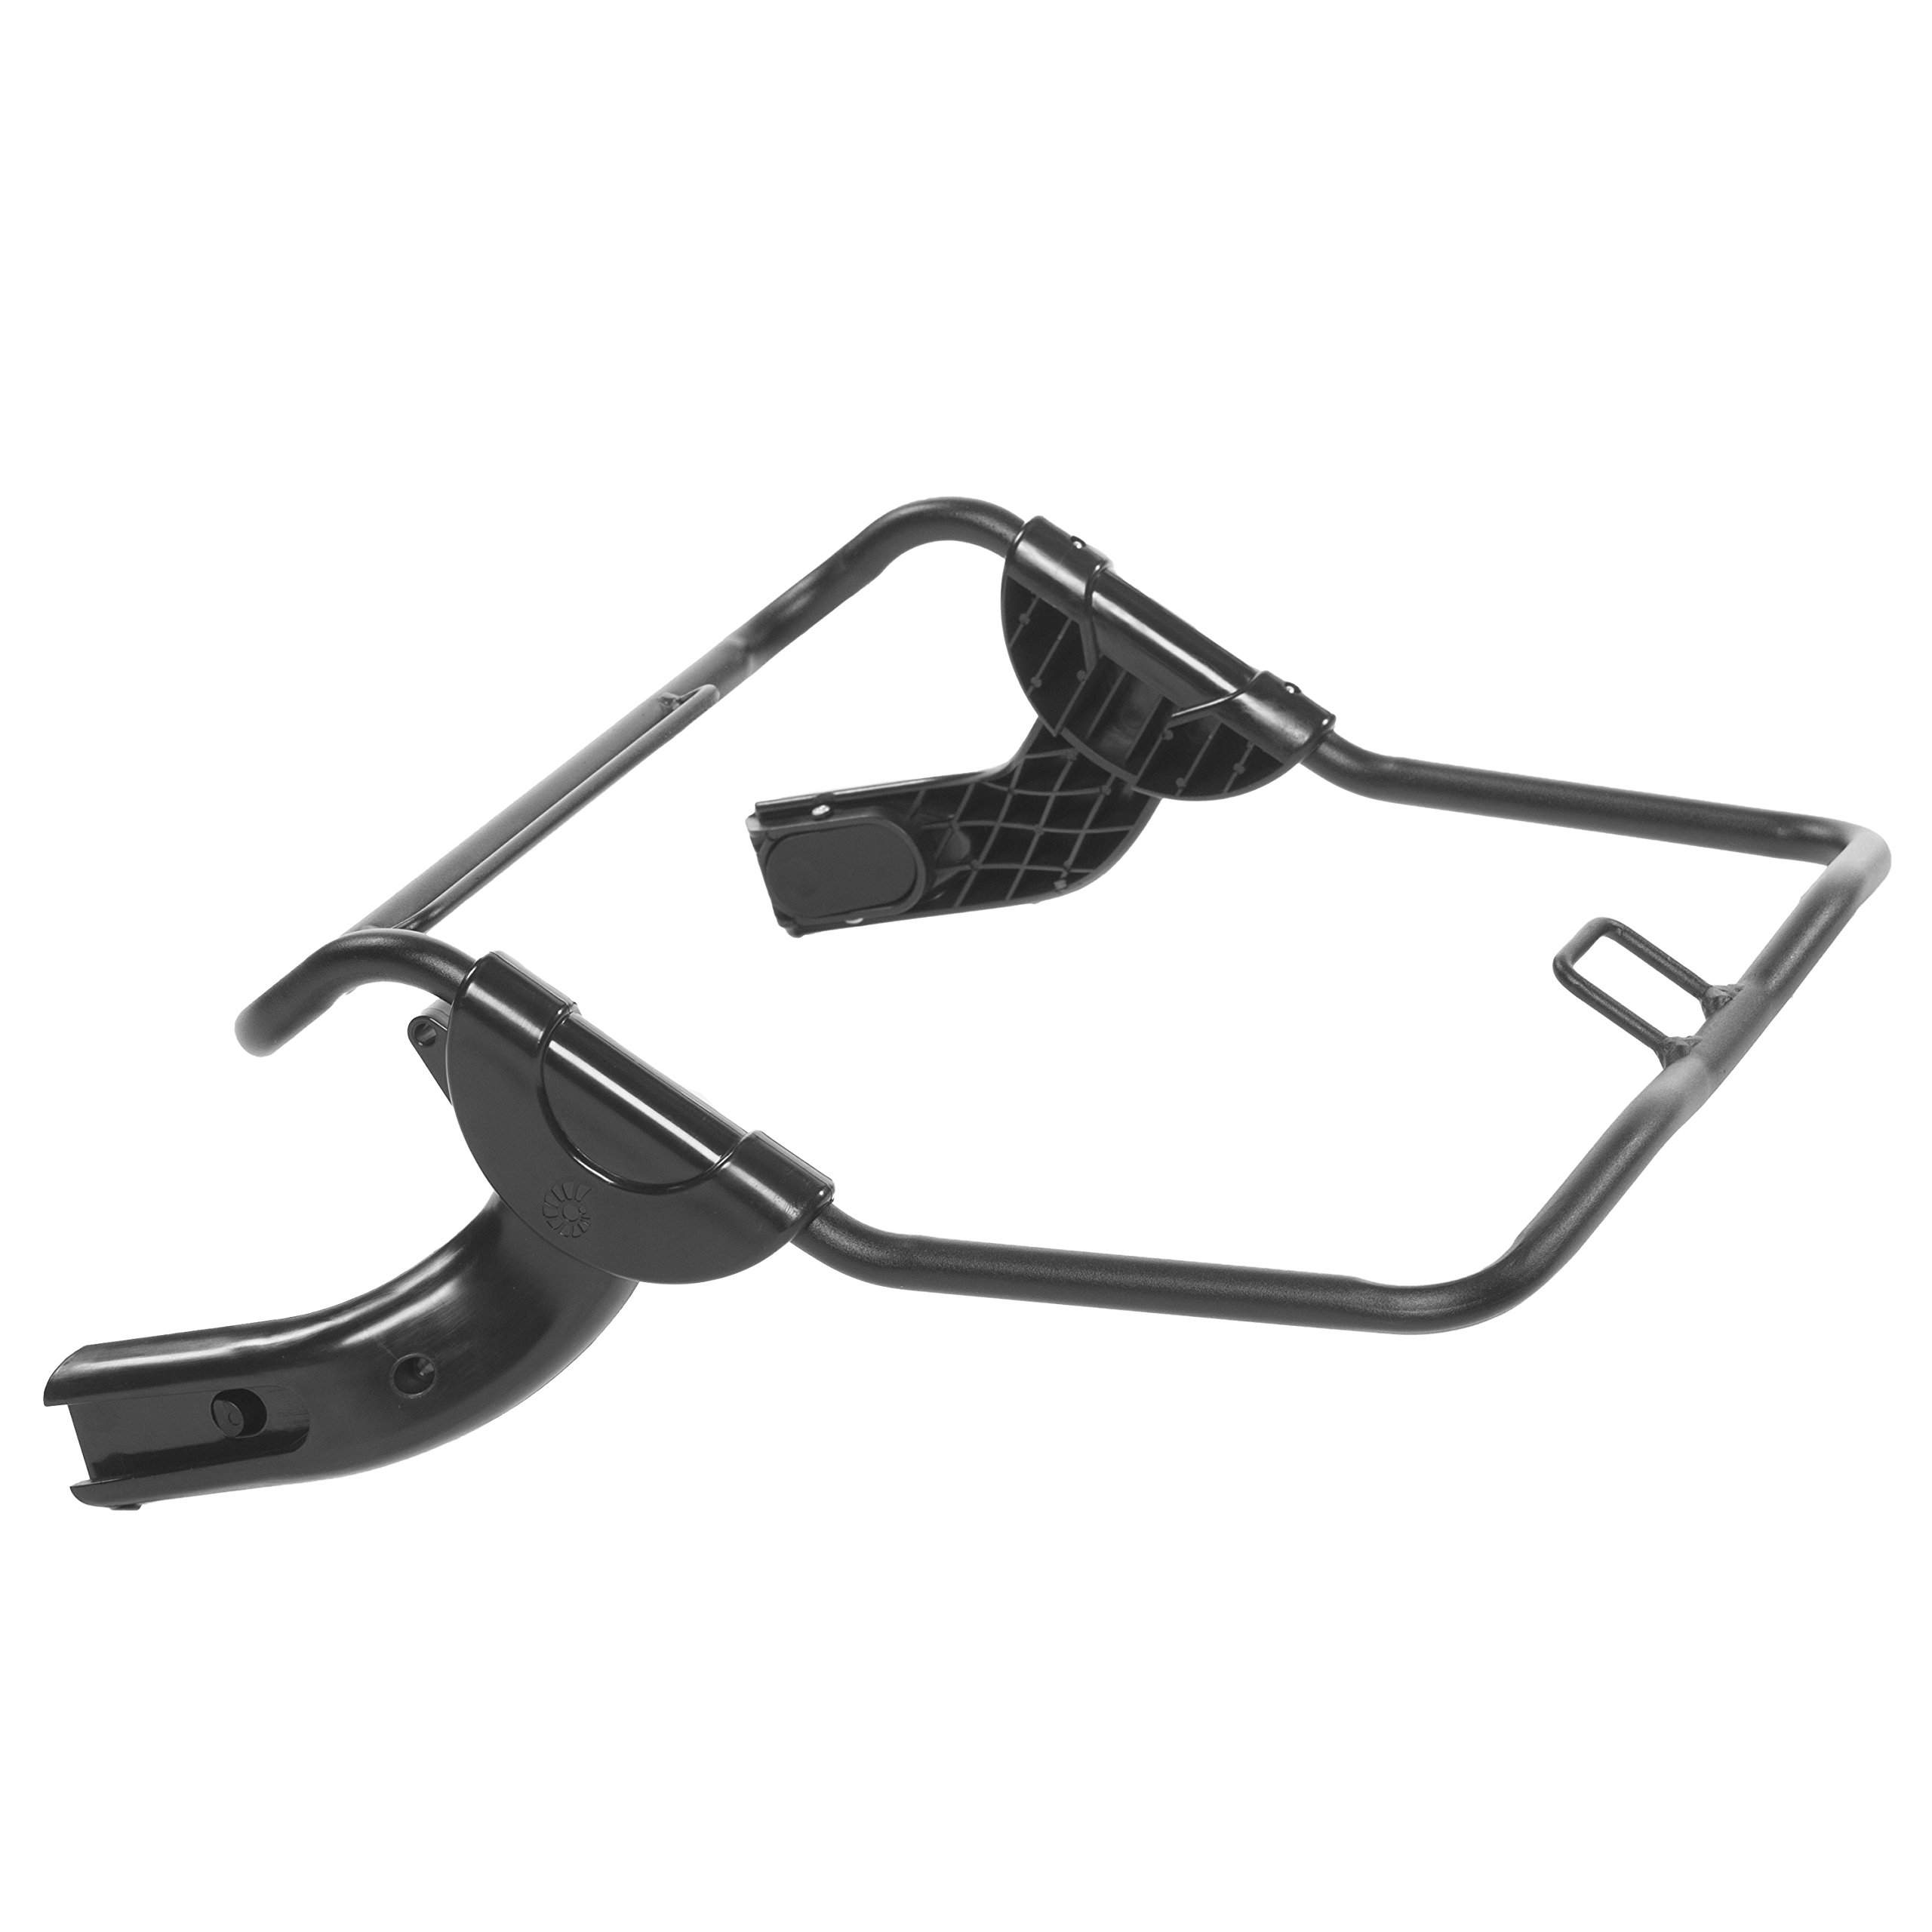 Ergobaby 180 Reversible Stroller Car Seat Adapter for Graco/Chicco by Ergobaby